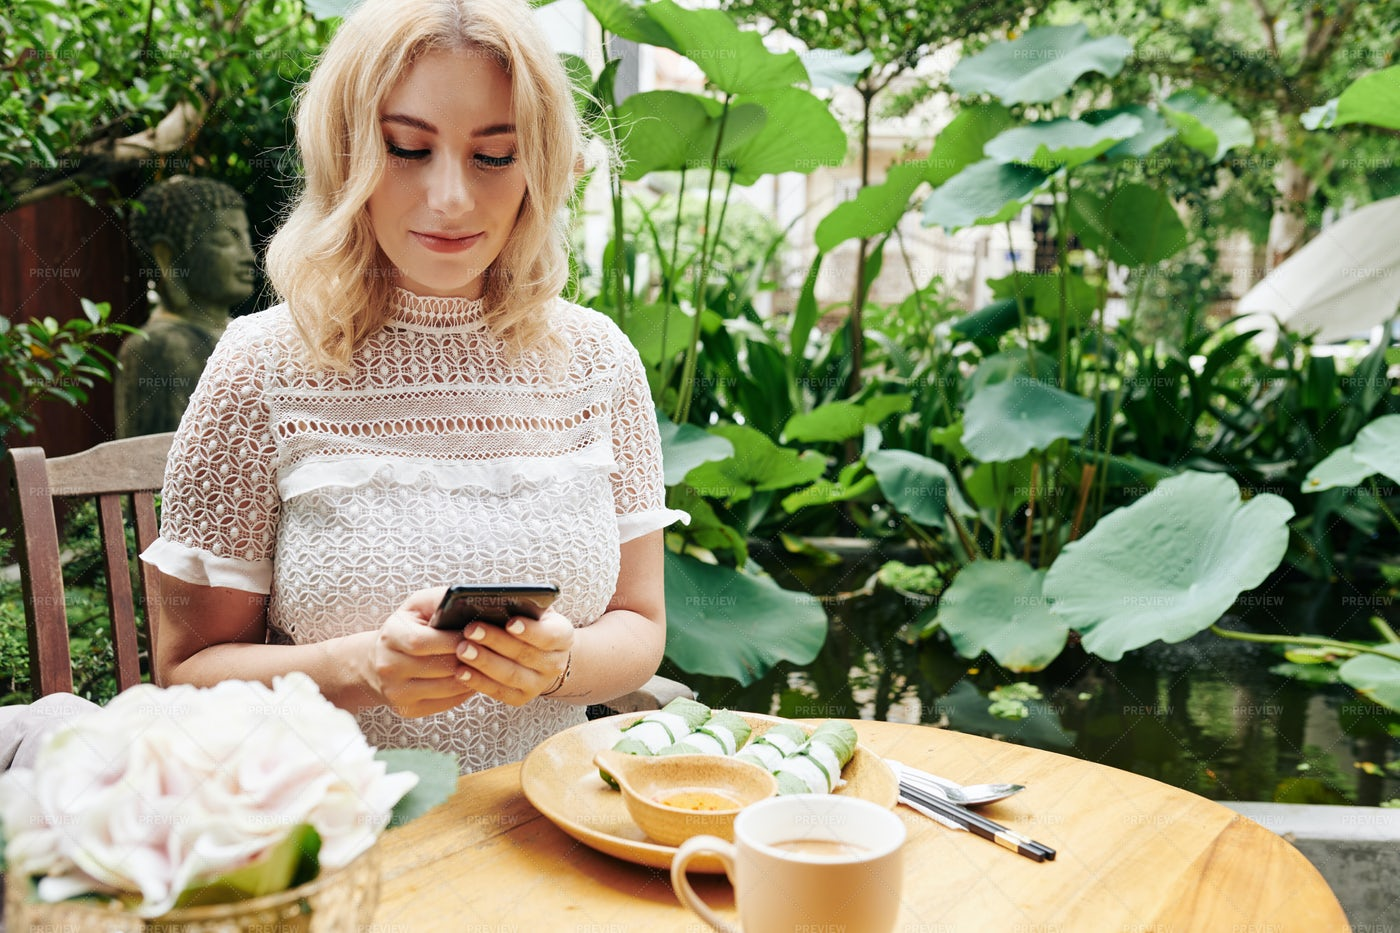 Pretty Woman Having Business Lunch: Stock Photos